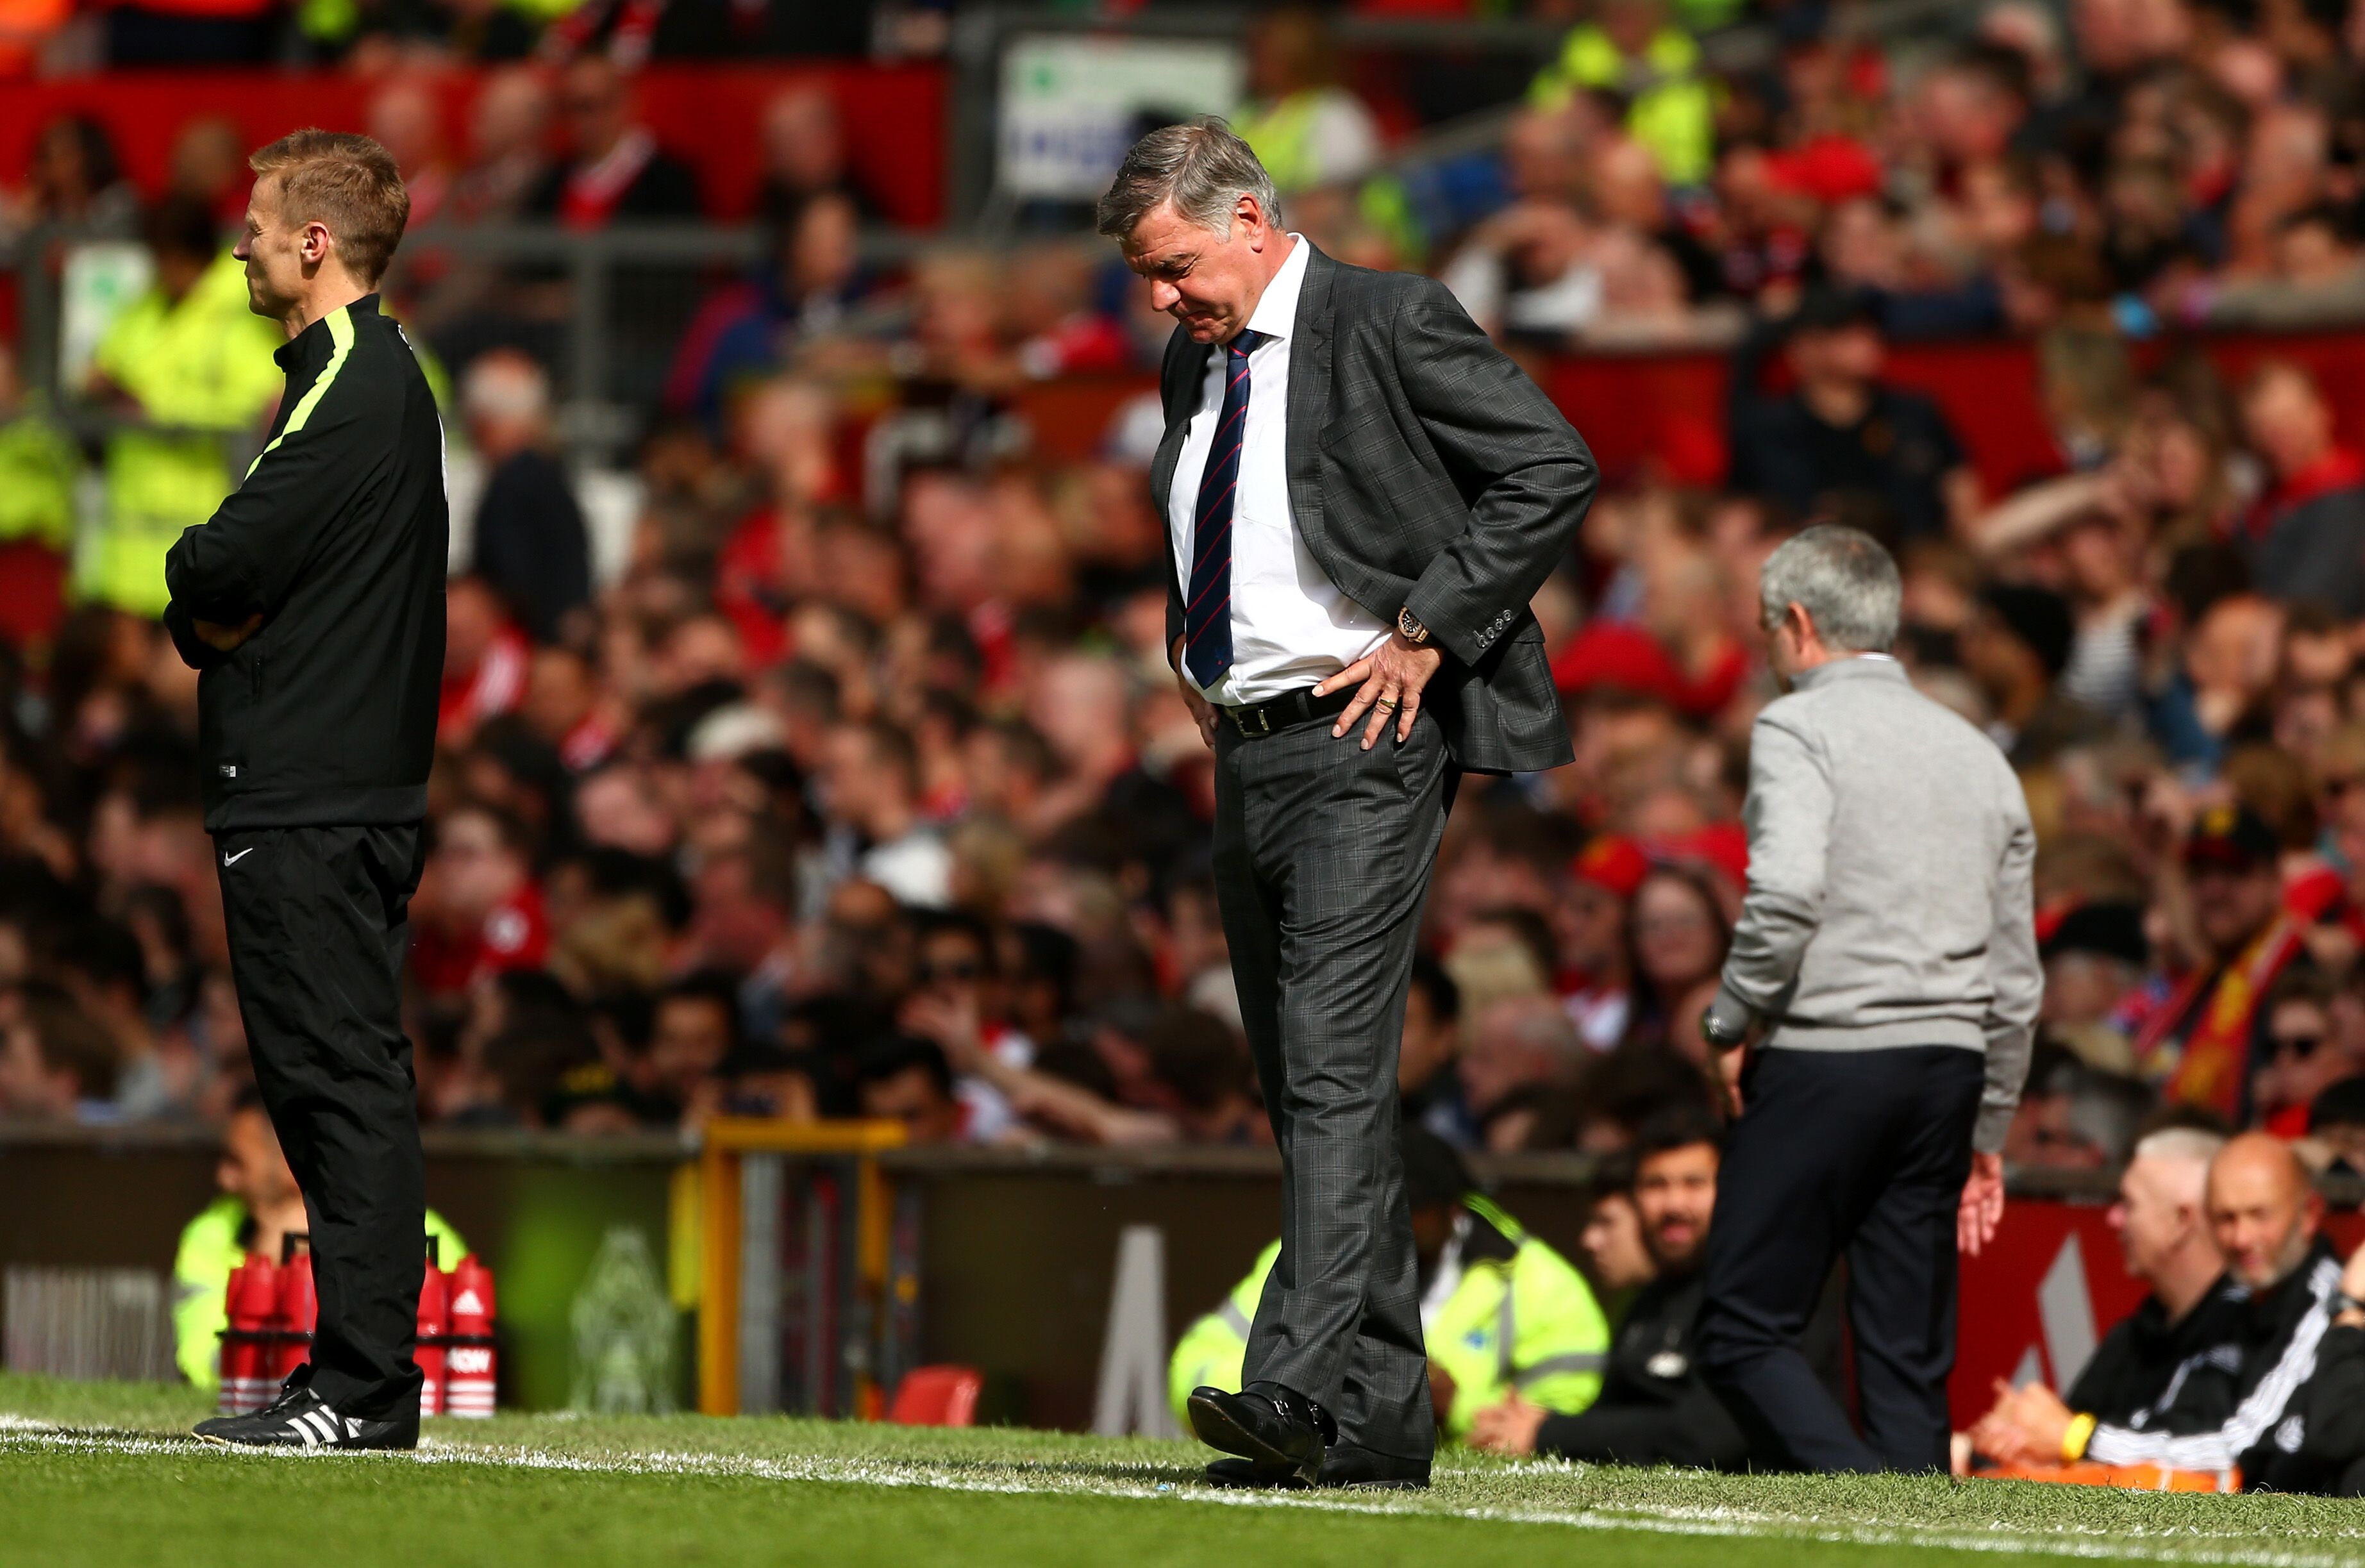 686327642-manchester-united-v-crystal-palace-premier-league.jpg